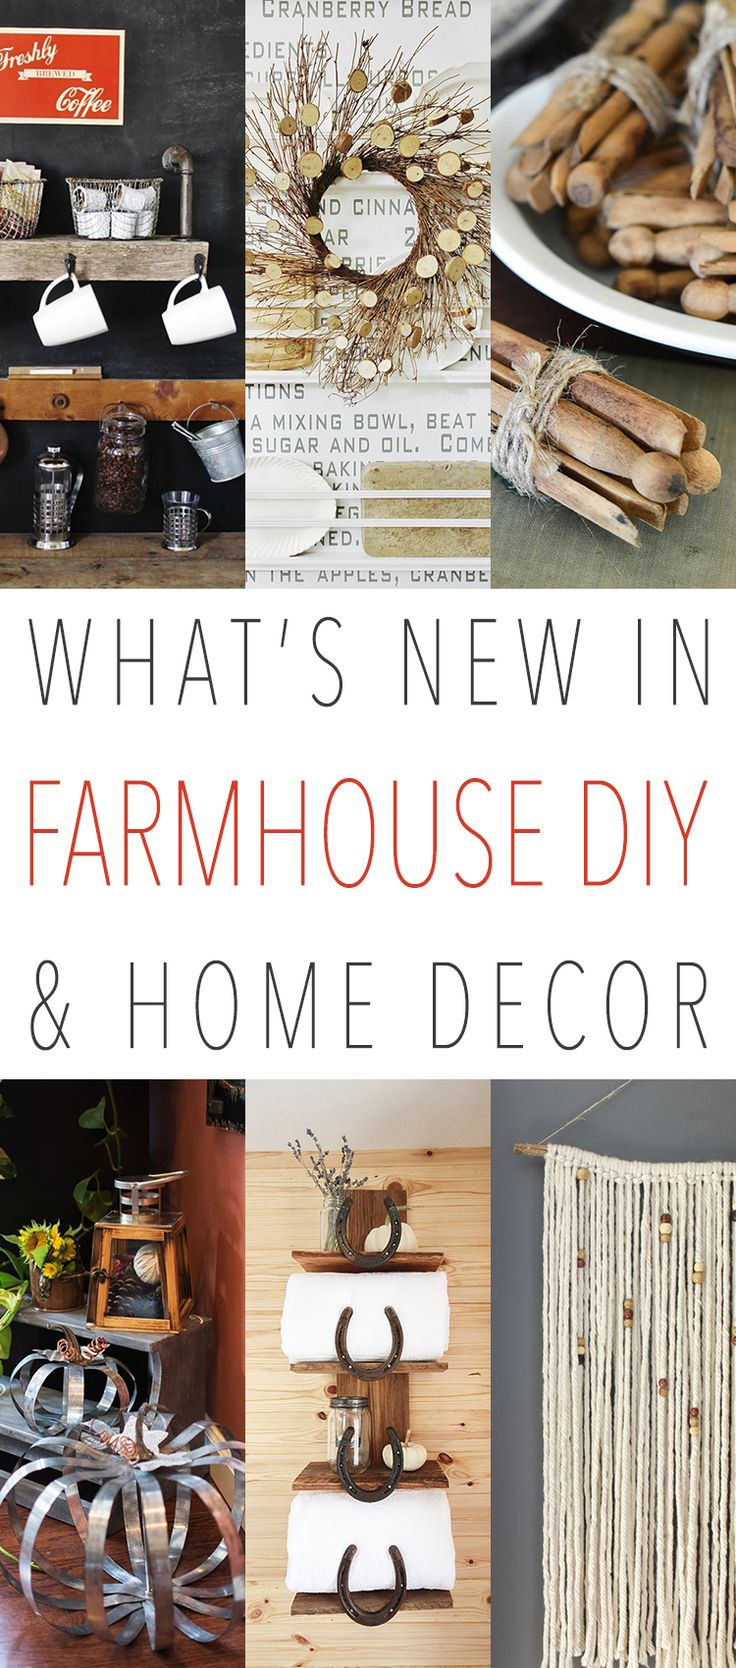 What S New In Farmhouse Diy And Home Decor Joanna Gaines Farmhouse Blogs And Farmhouse Style